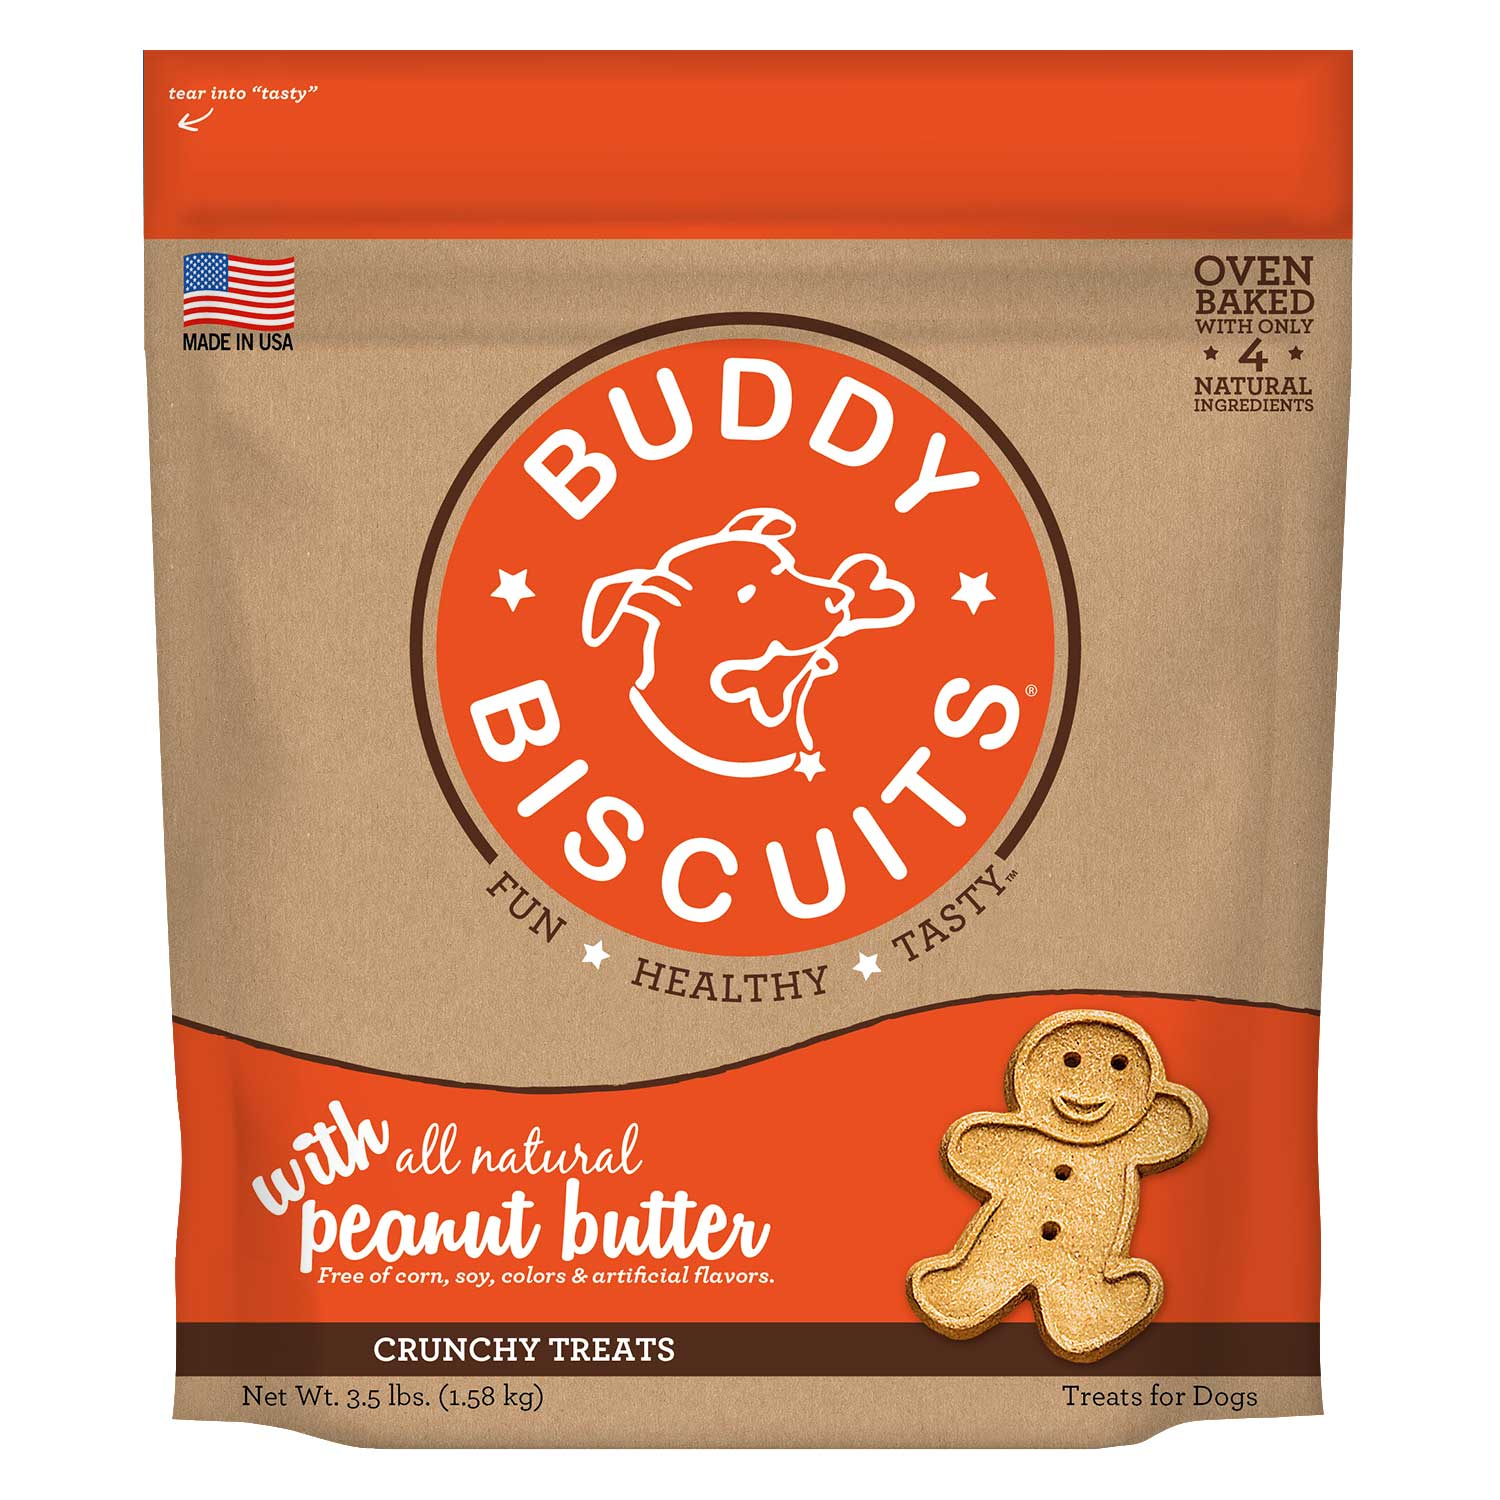 Buddy Biscuits Original Oven Baked Crunchy Treats Peanut Butter 3.5 pounds Dog Treats and Bones - London the Local